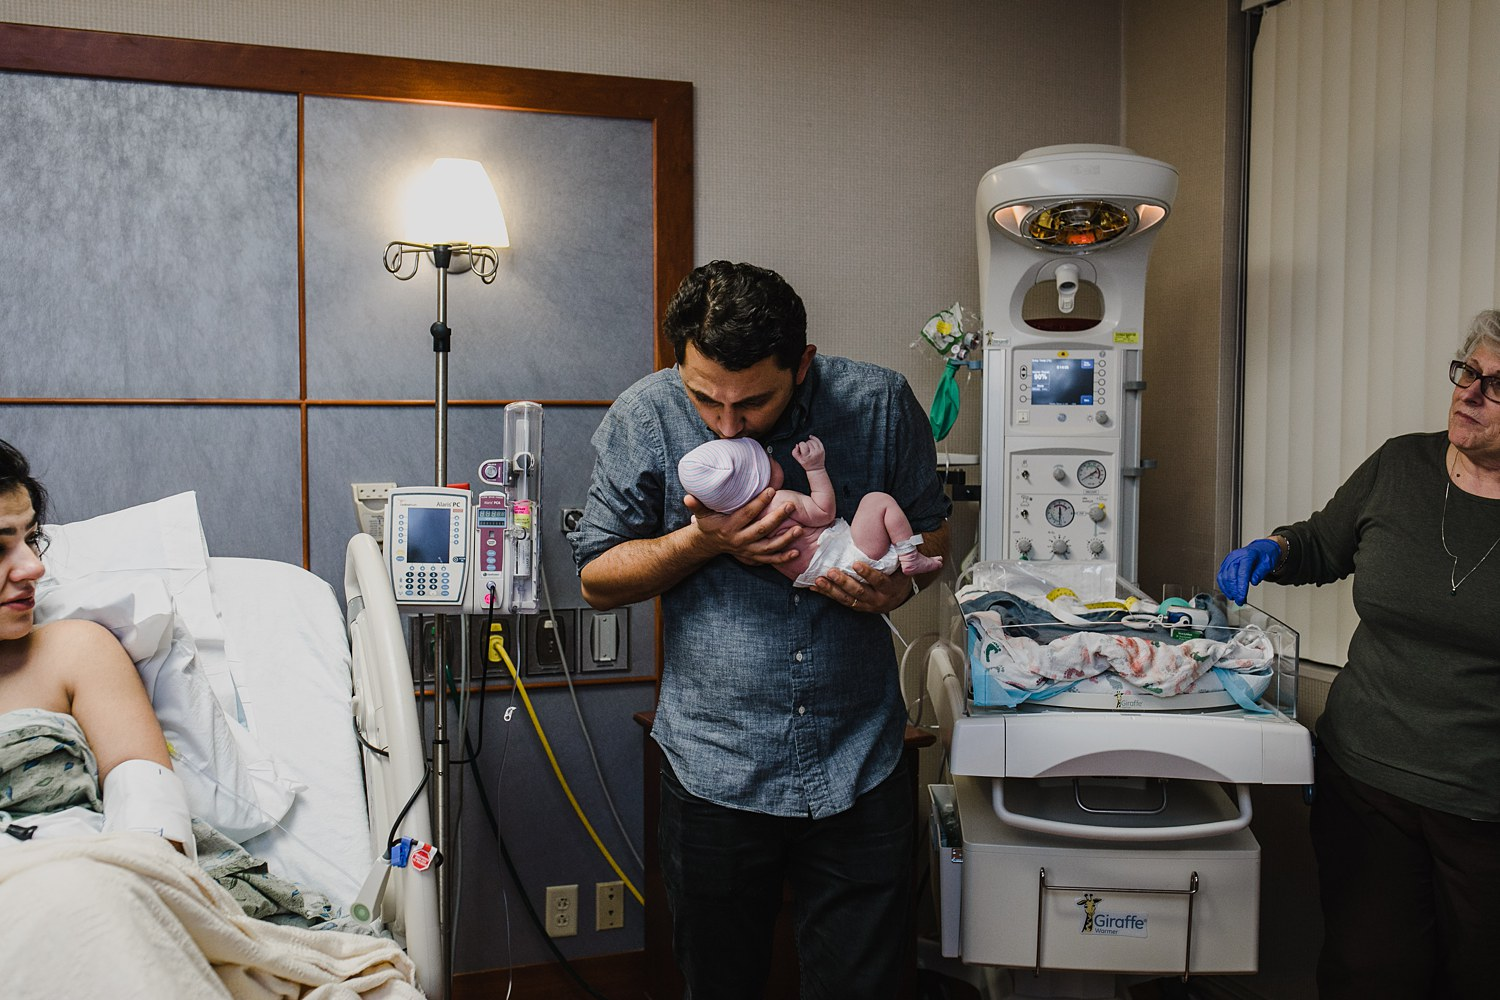 New Father kisses his newborn daughter for the first time after her birth in the East Bay of the San Francisco's Bay Area.